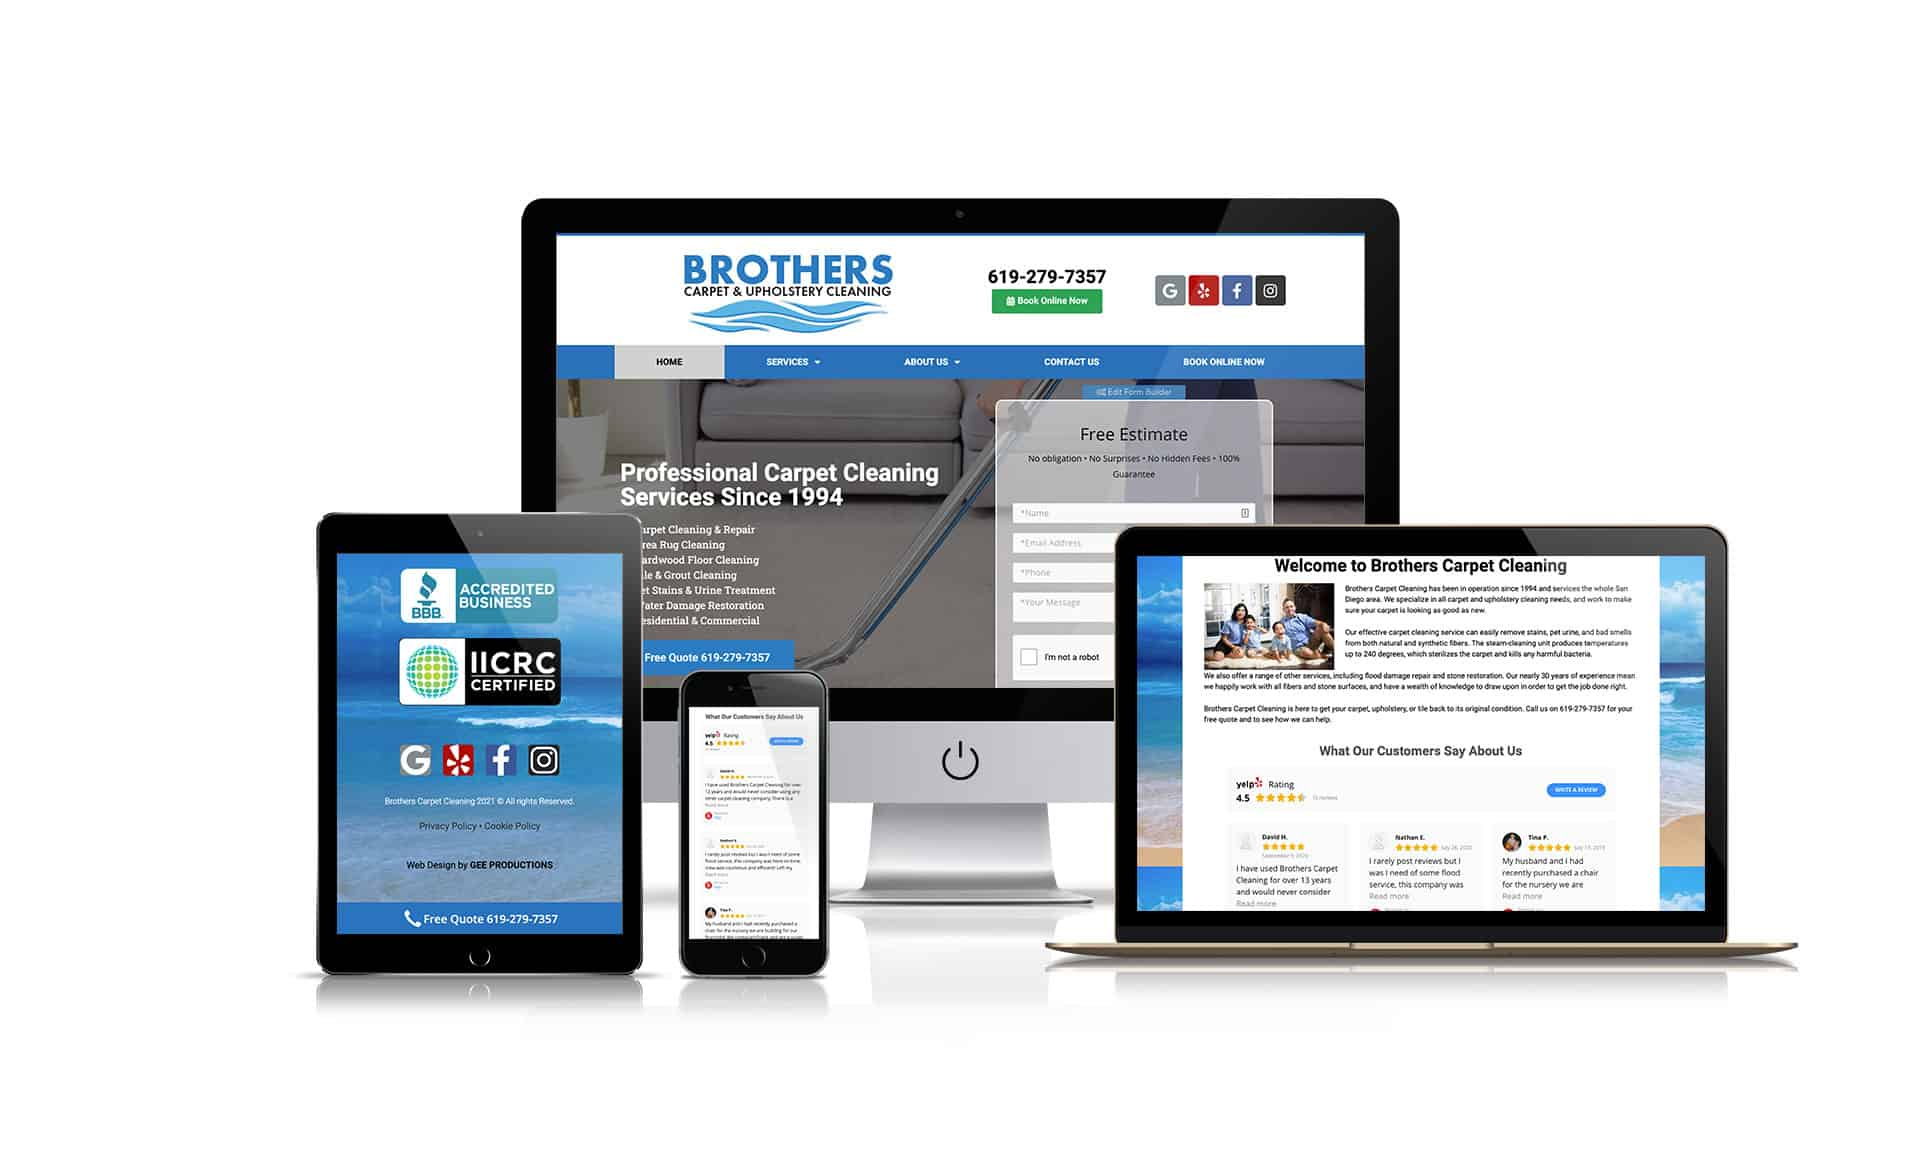 Brothers Carpet Upholstery-Cleaning - Website Design